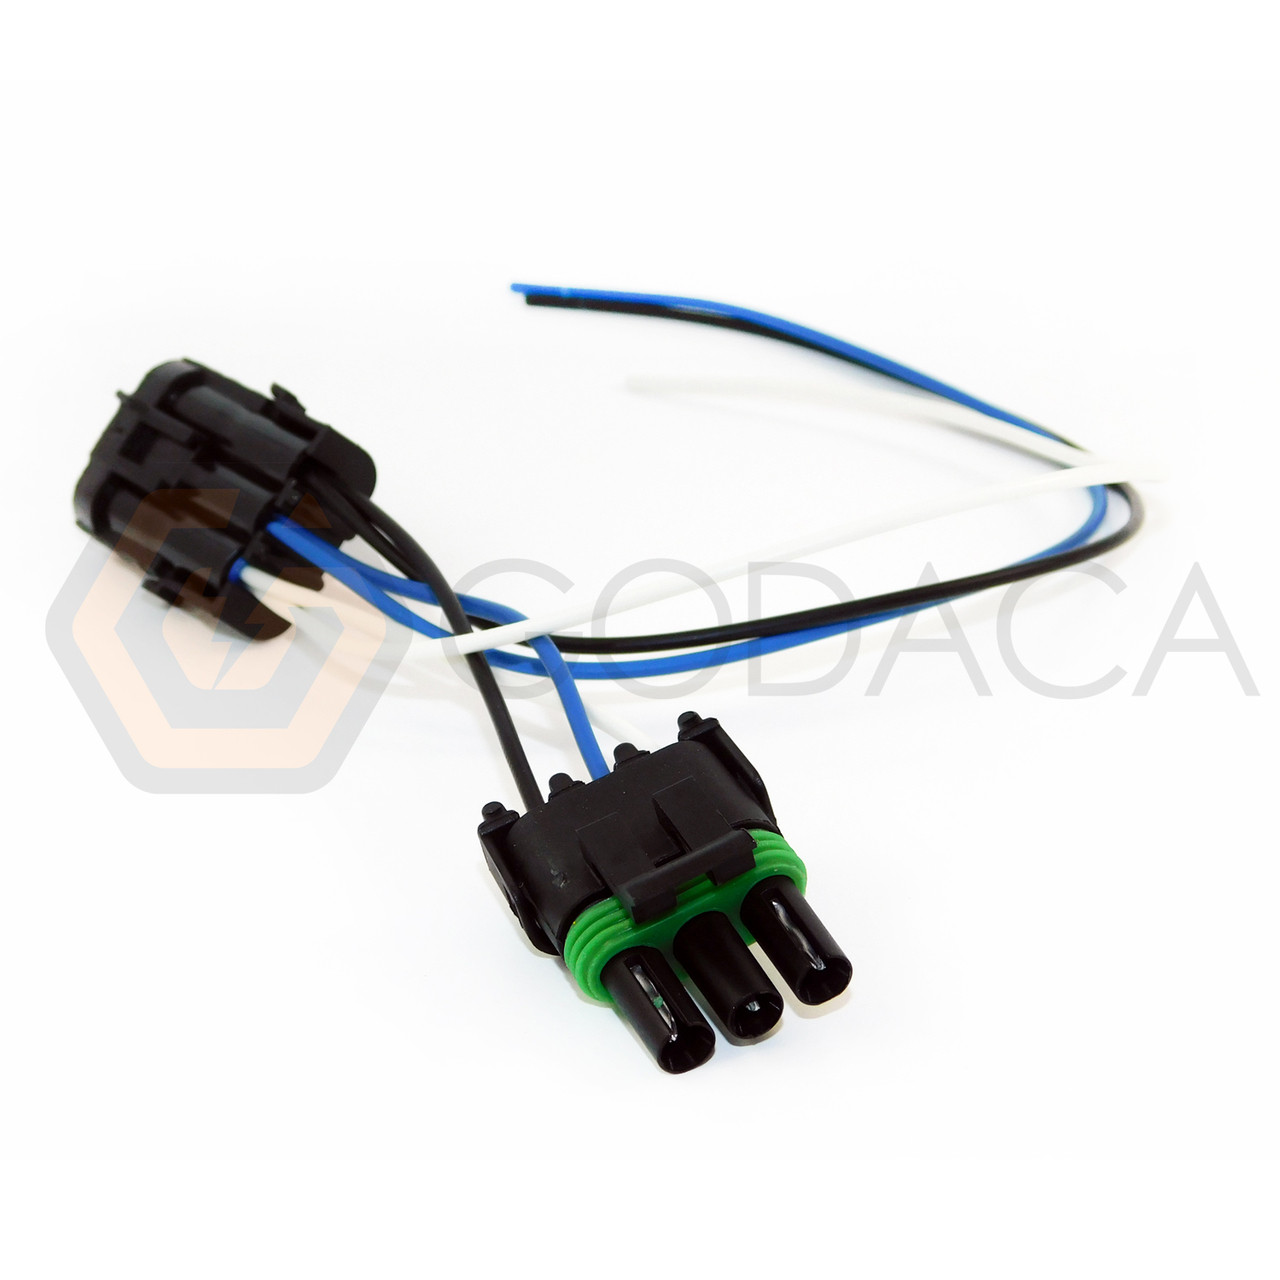 Gm Tps Harness Great Installation Of Wiring Diagram 1x Connector Adapter Breakout For Buick Jeep Godaca Rh Com 07 Chevy Cobalt